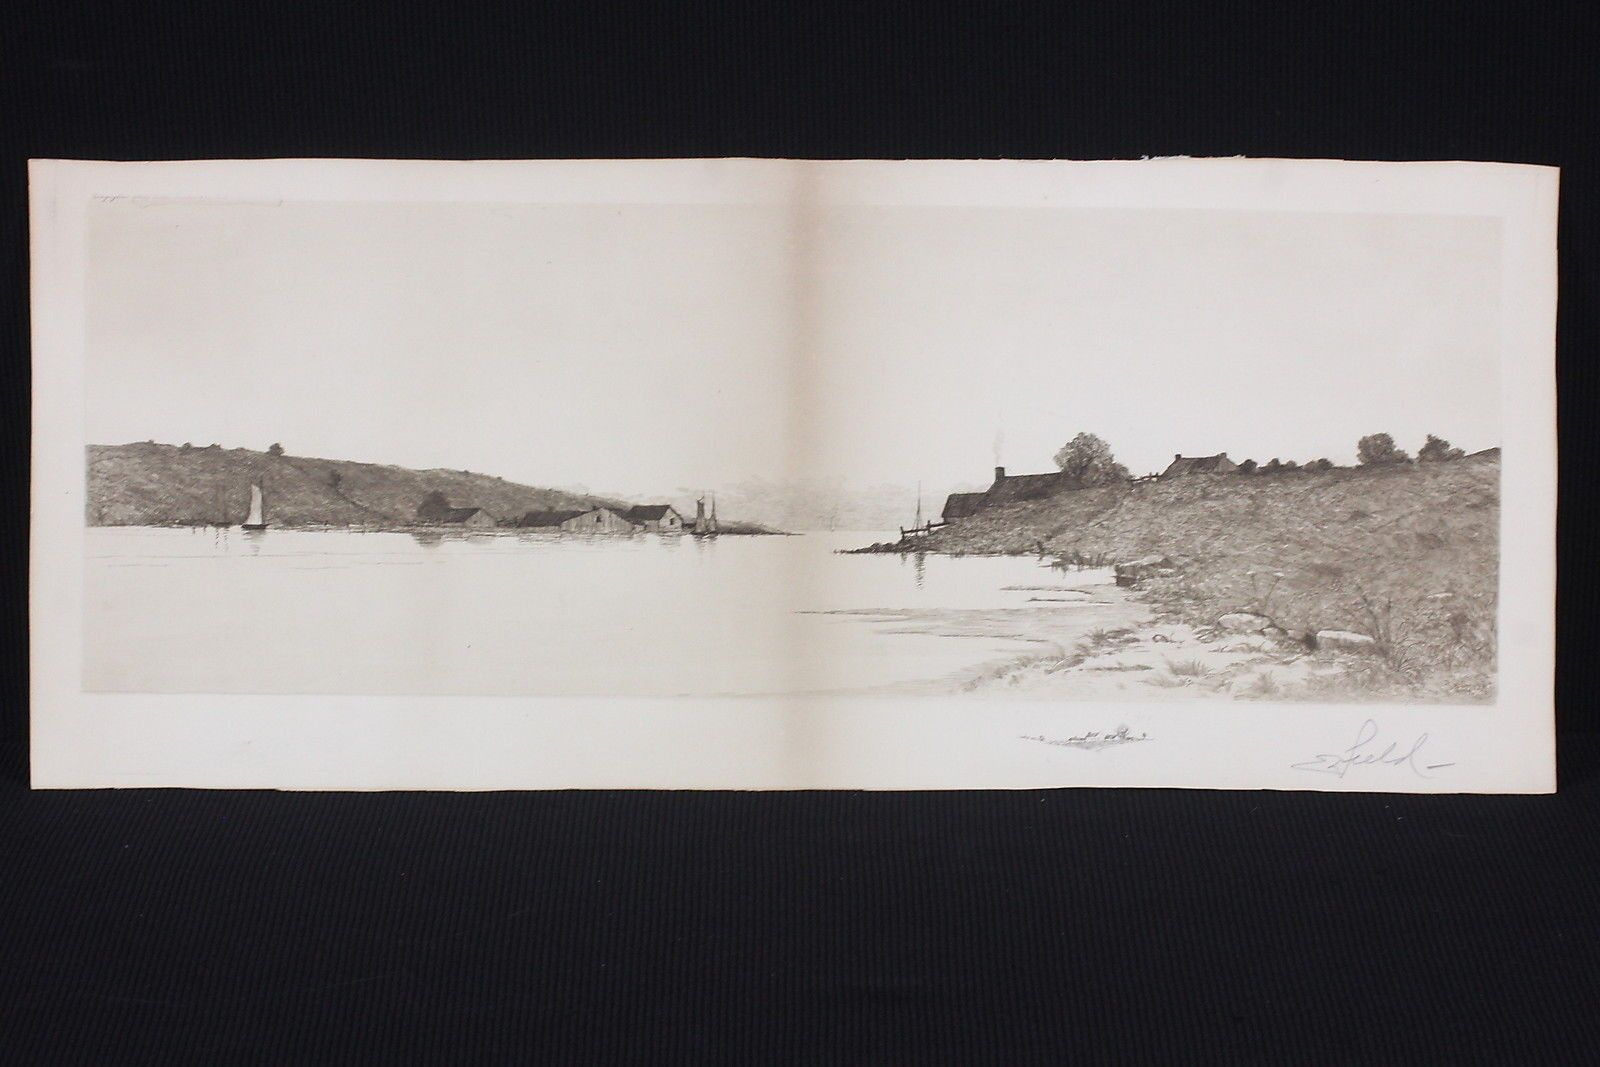 Edward Loyal Field Etched Print Pencil Signed Panoramic Landscape Remarque Proof